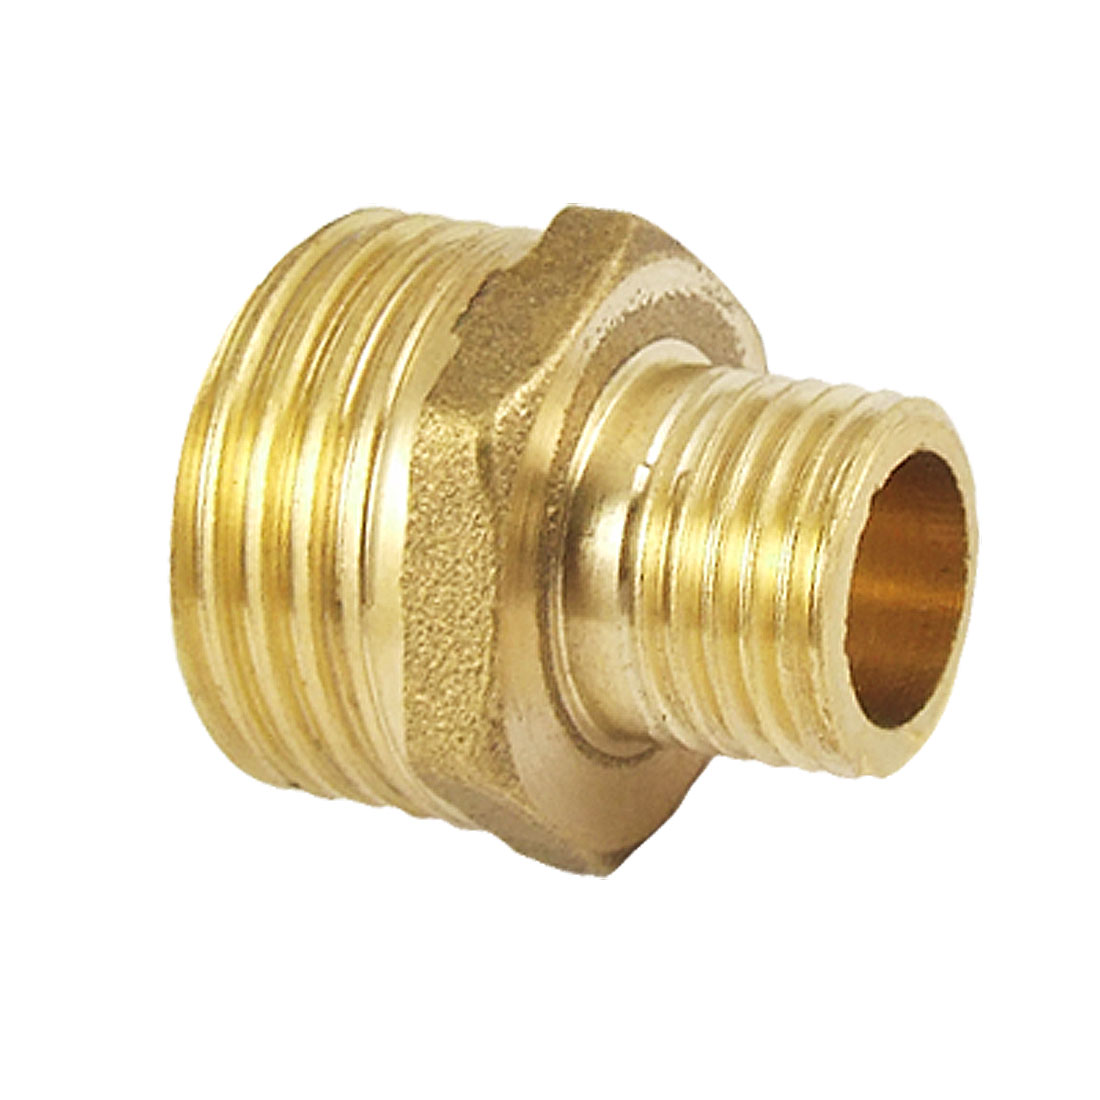 1/2PT x 1/4PT Male Thread Reducing Brass Pipe Nipple Fitting